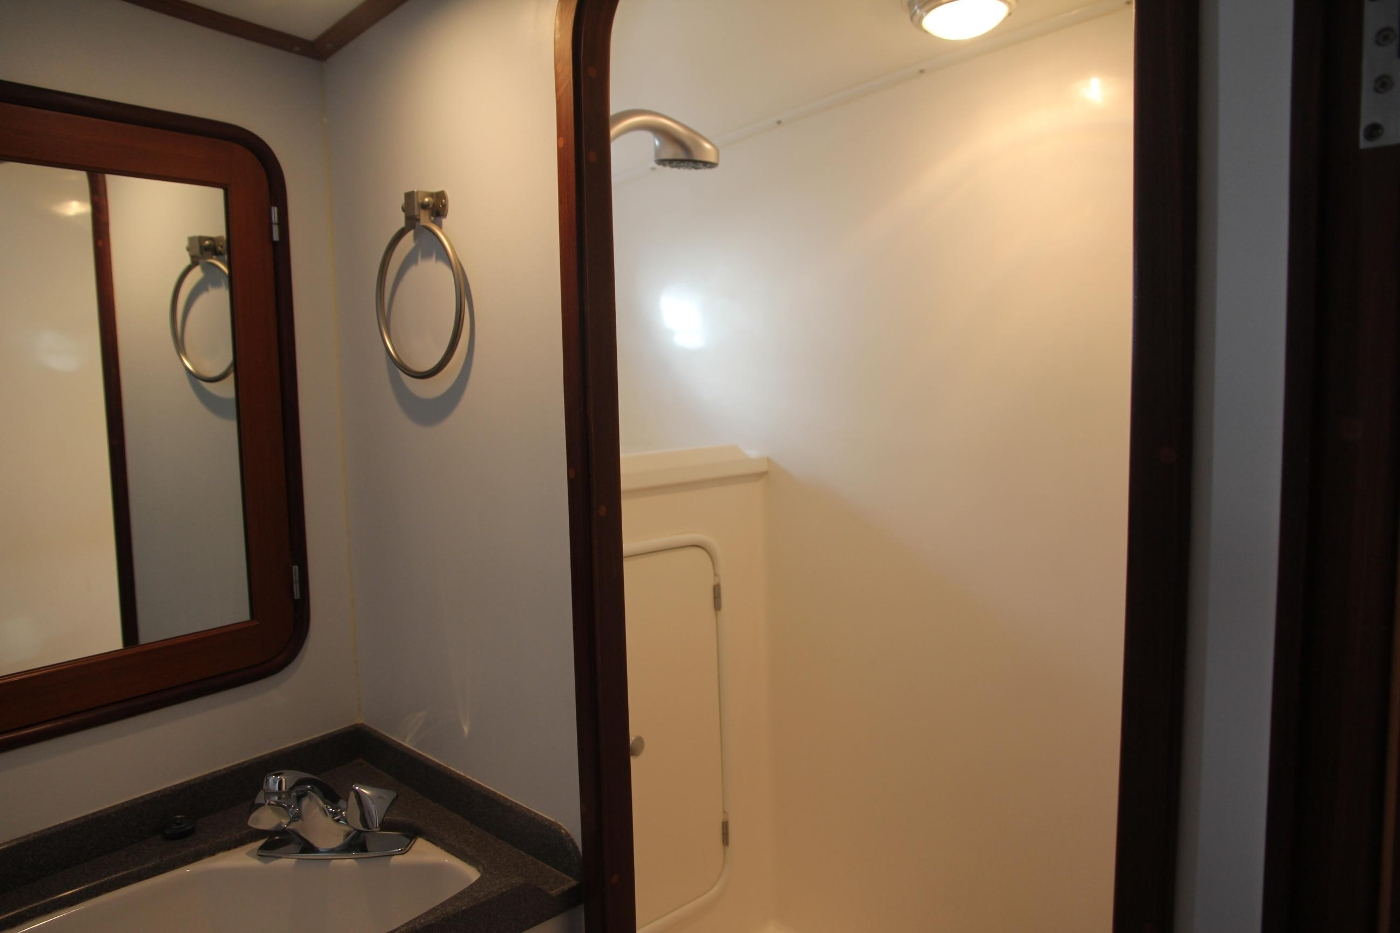 2000 Nordhavn Pilothouse, Master Vanity and Shower